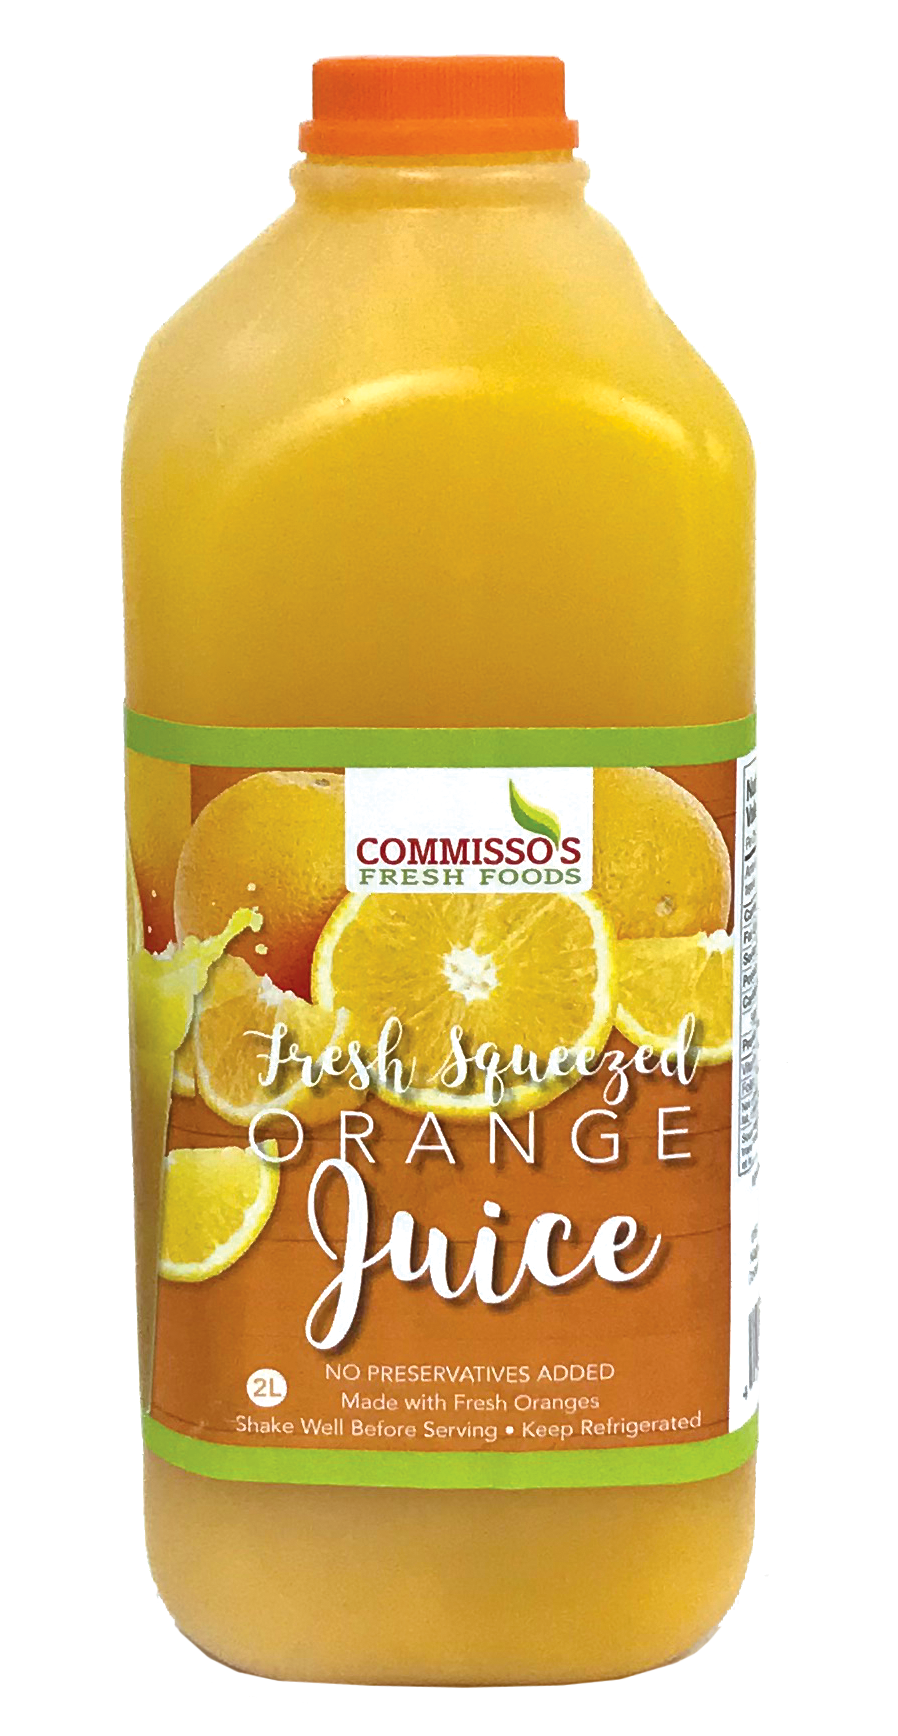 Commisso's Orange Juice - 2 Litre